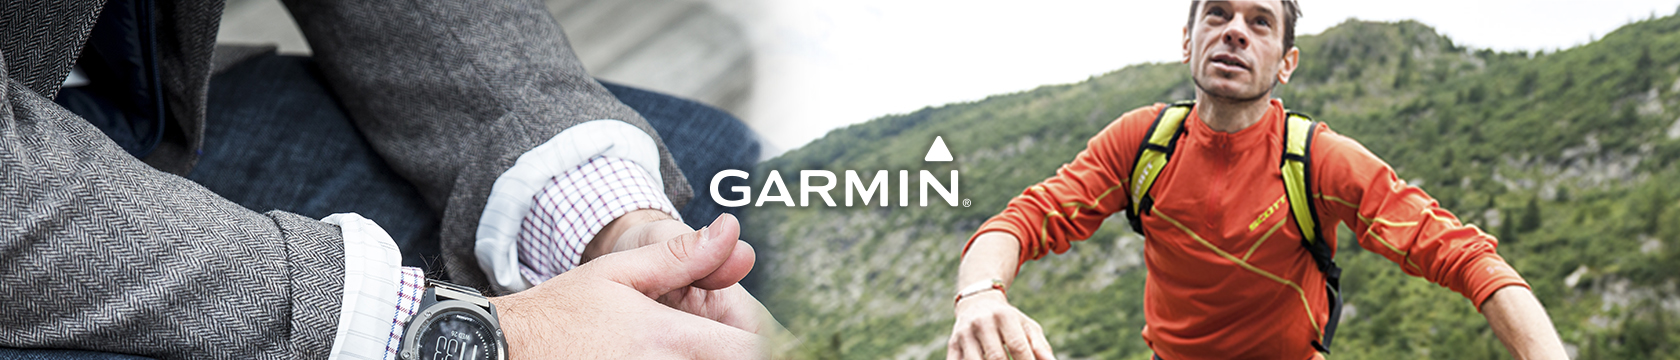 One man's hands and another man's half the body in Garmin gear.